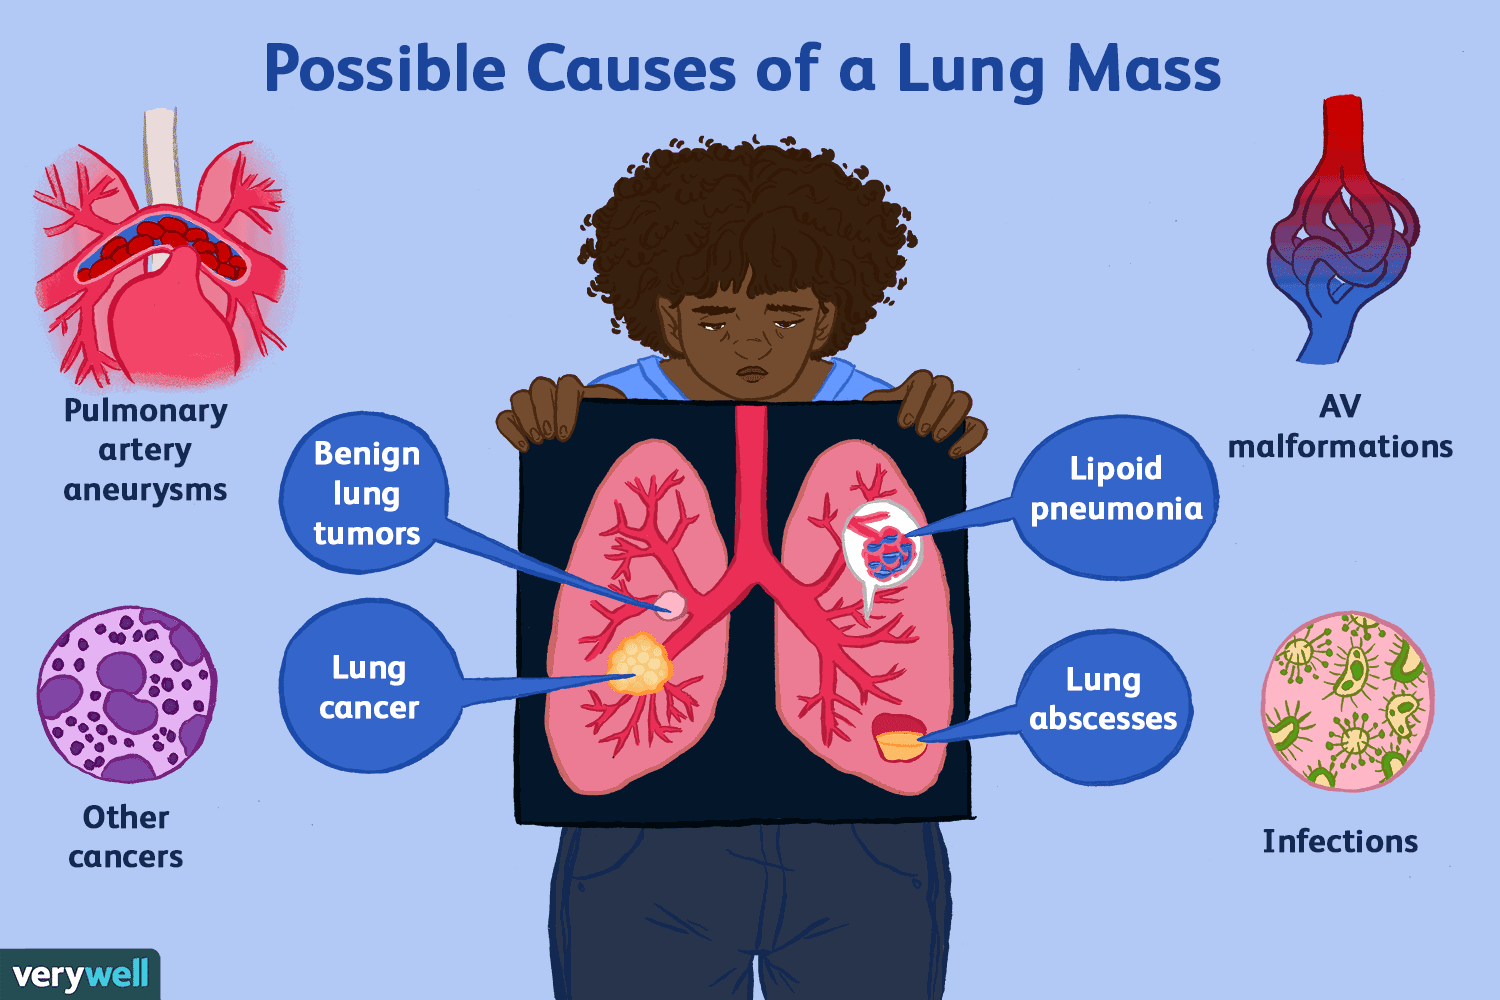 What Does Rt Mean >> Possible Causes of a Lung Mass